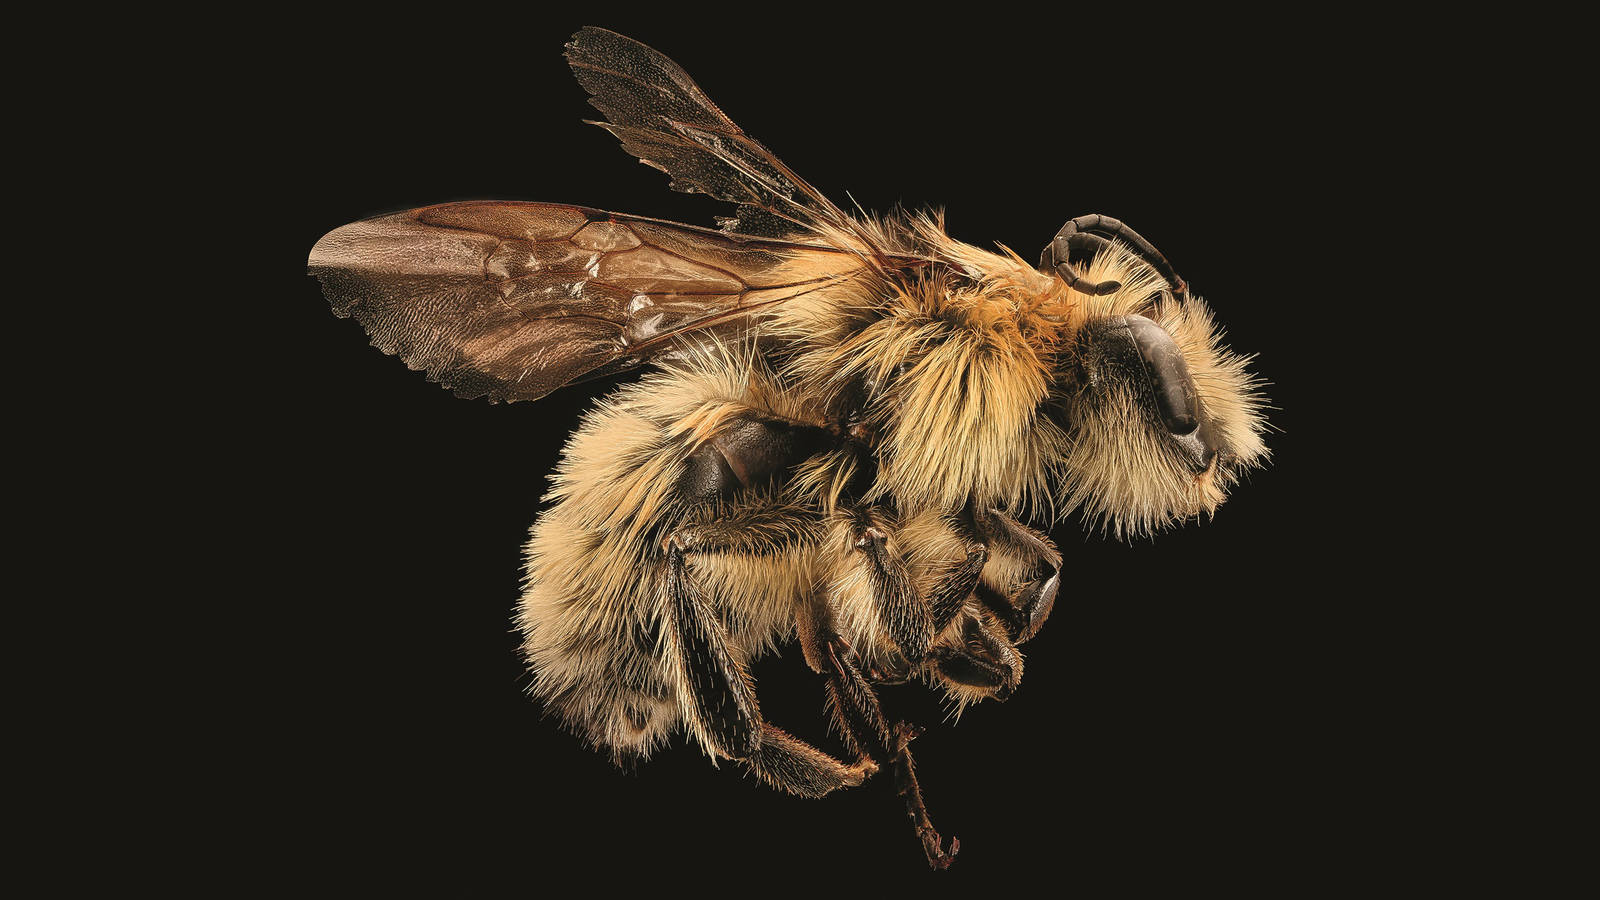 """<h3 style=""""text-align: center; padding: 50px;""""><span class=""""text-Intro-style""""><em>Bombus vandykei</em> (bumblebee), Yosemite National Park, California. © SAM DROEGE/USGS BEE INVENTORY AND MONITORING LAB</span></h3>"""